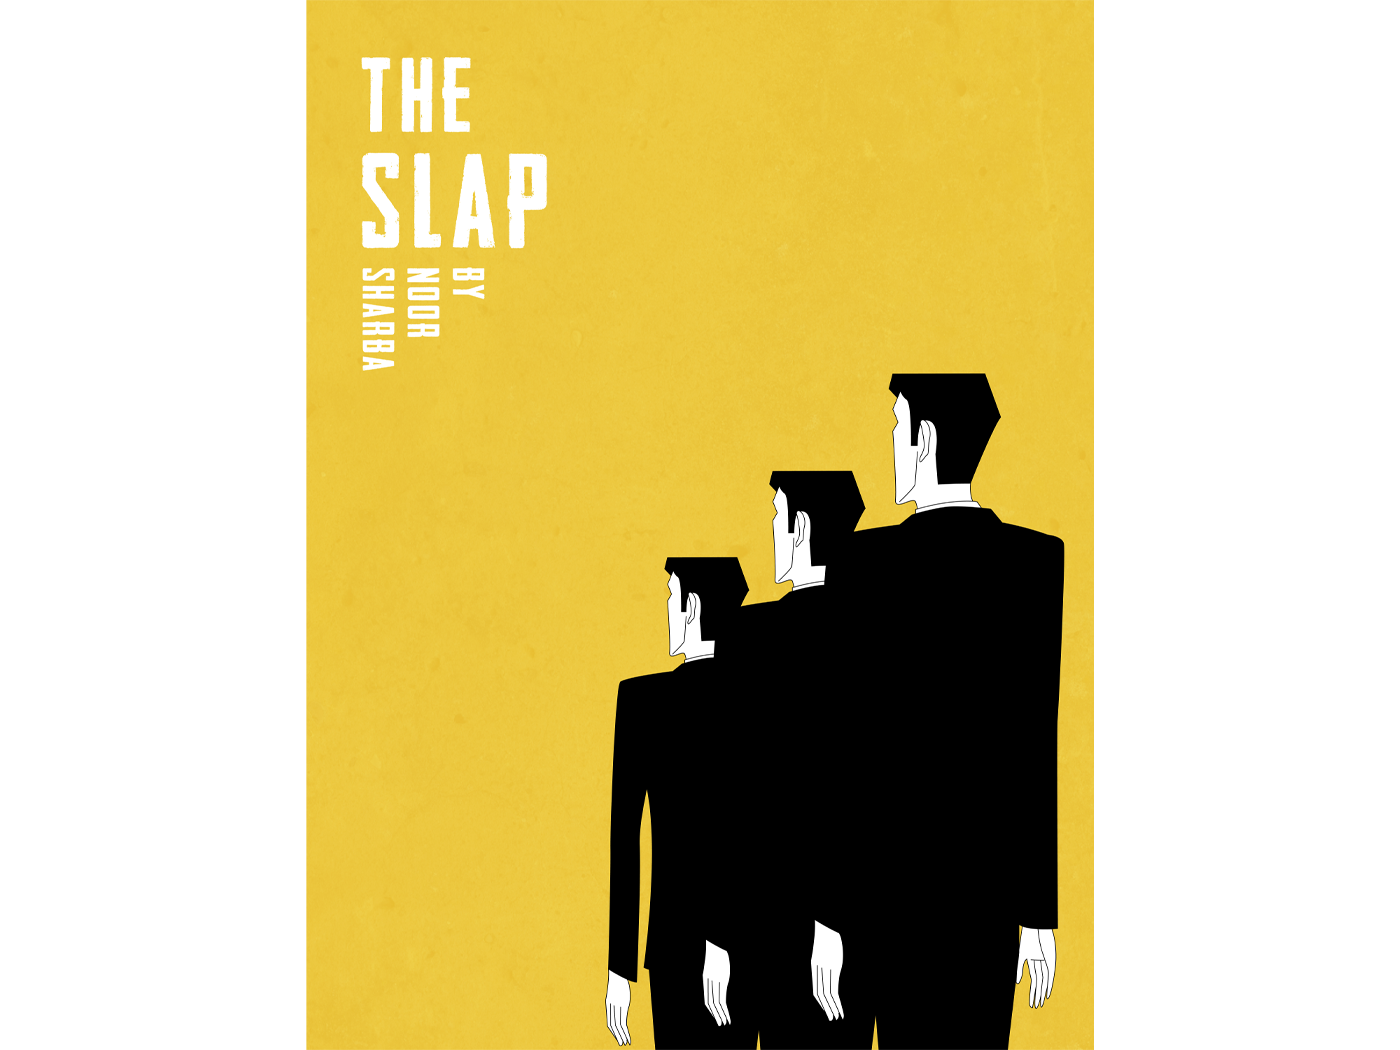 The Slap minimalism minimal negative space space cinema short film film movie yellowish yellow artist artistic poster art illustration syria graphic design graphic design